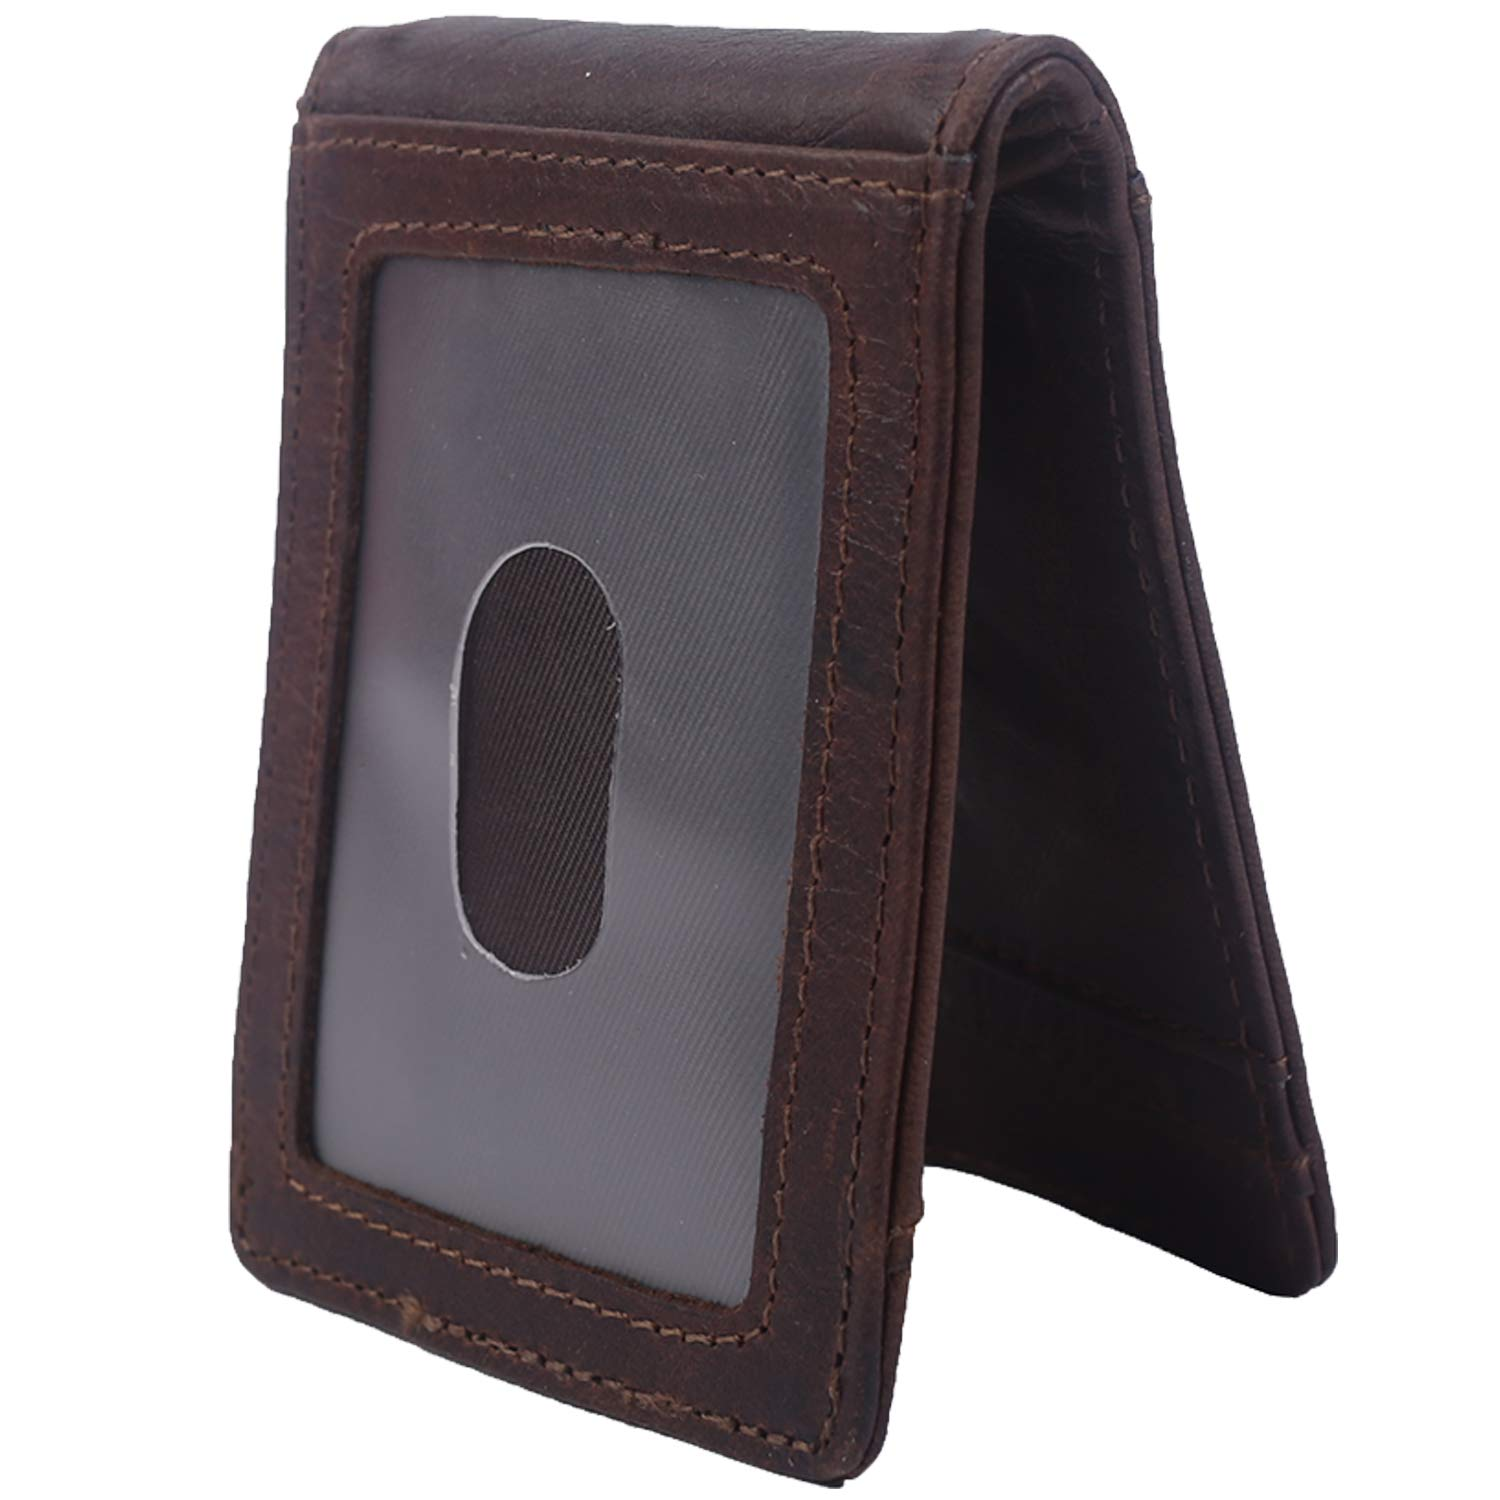 Mens Bifold Wallet RFID Money Clip Vintage Leather Slim Thin Front Pocket Wallet (Coffee (ID Window))